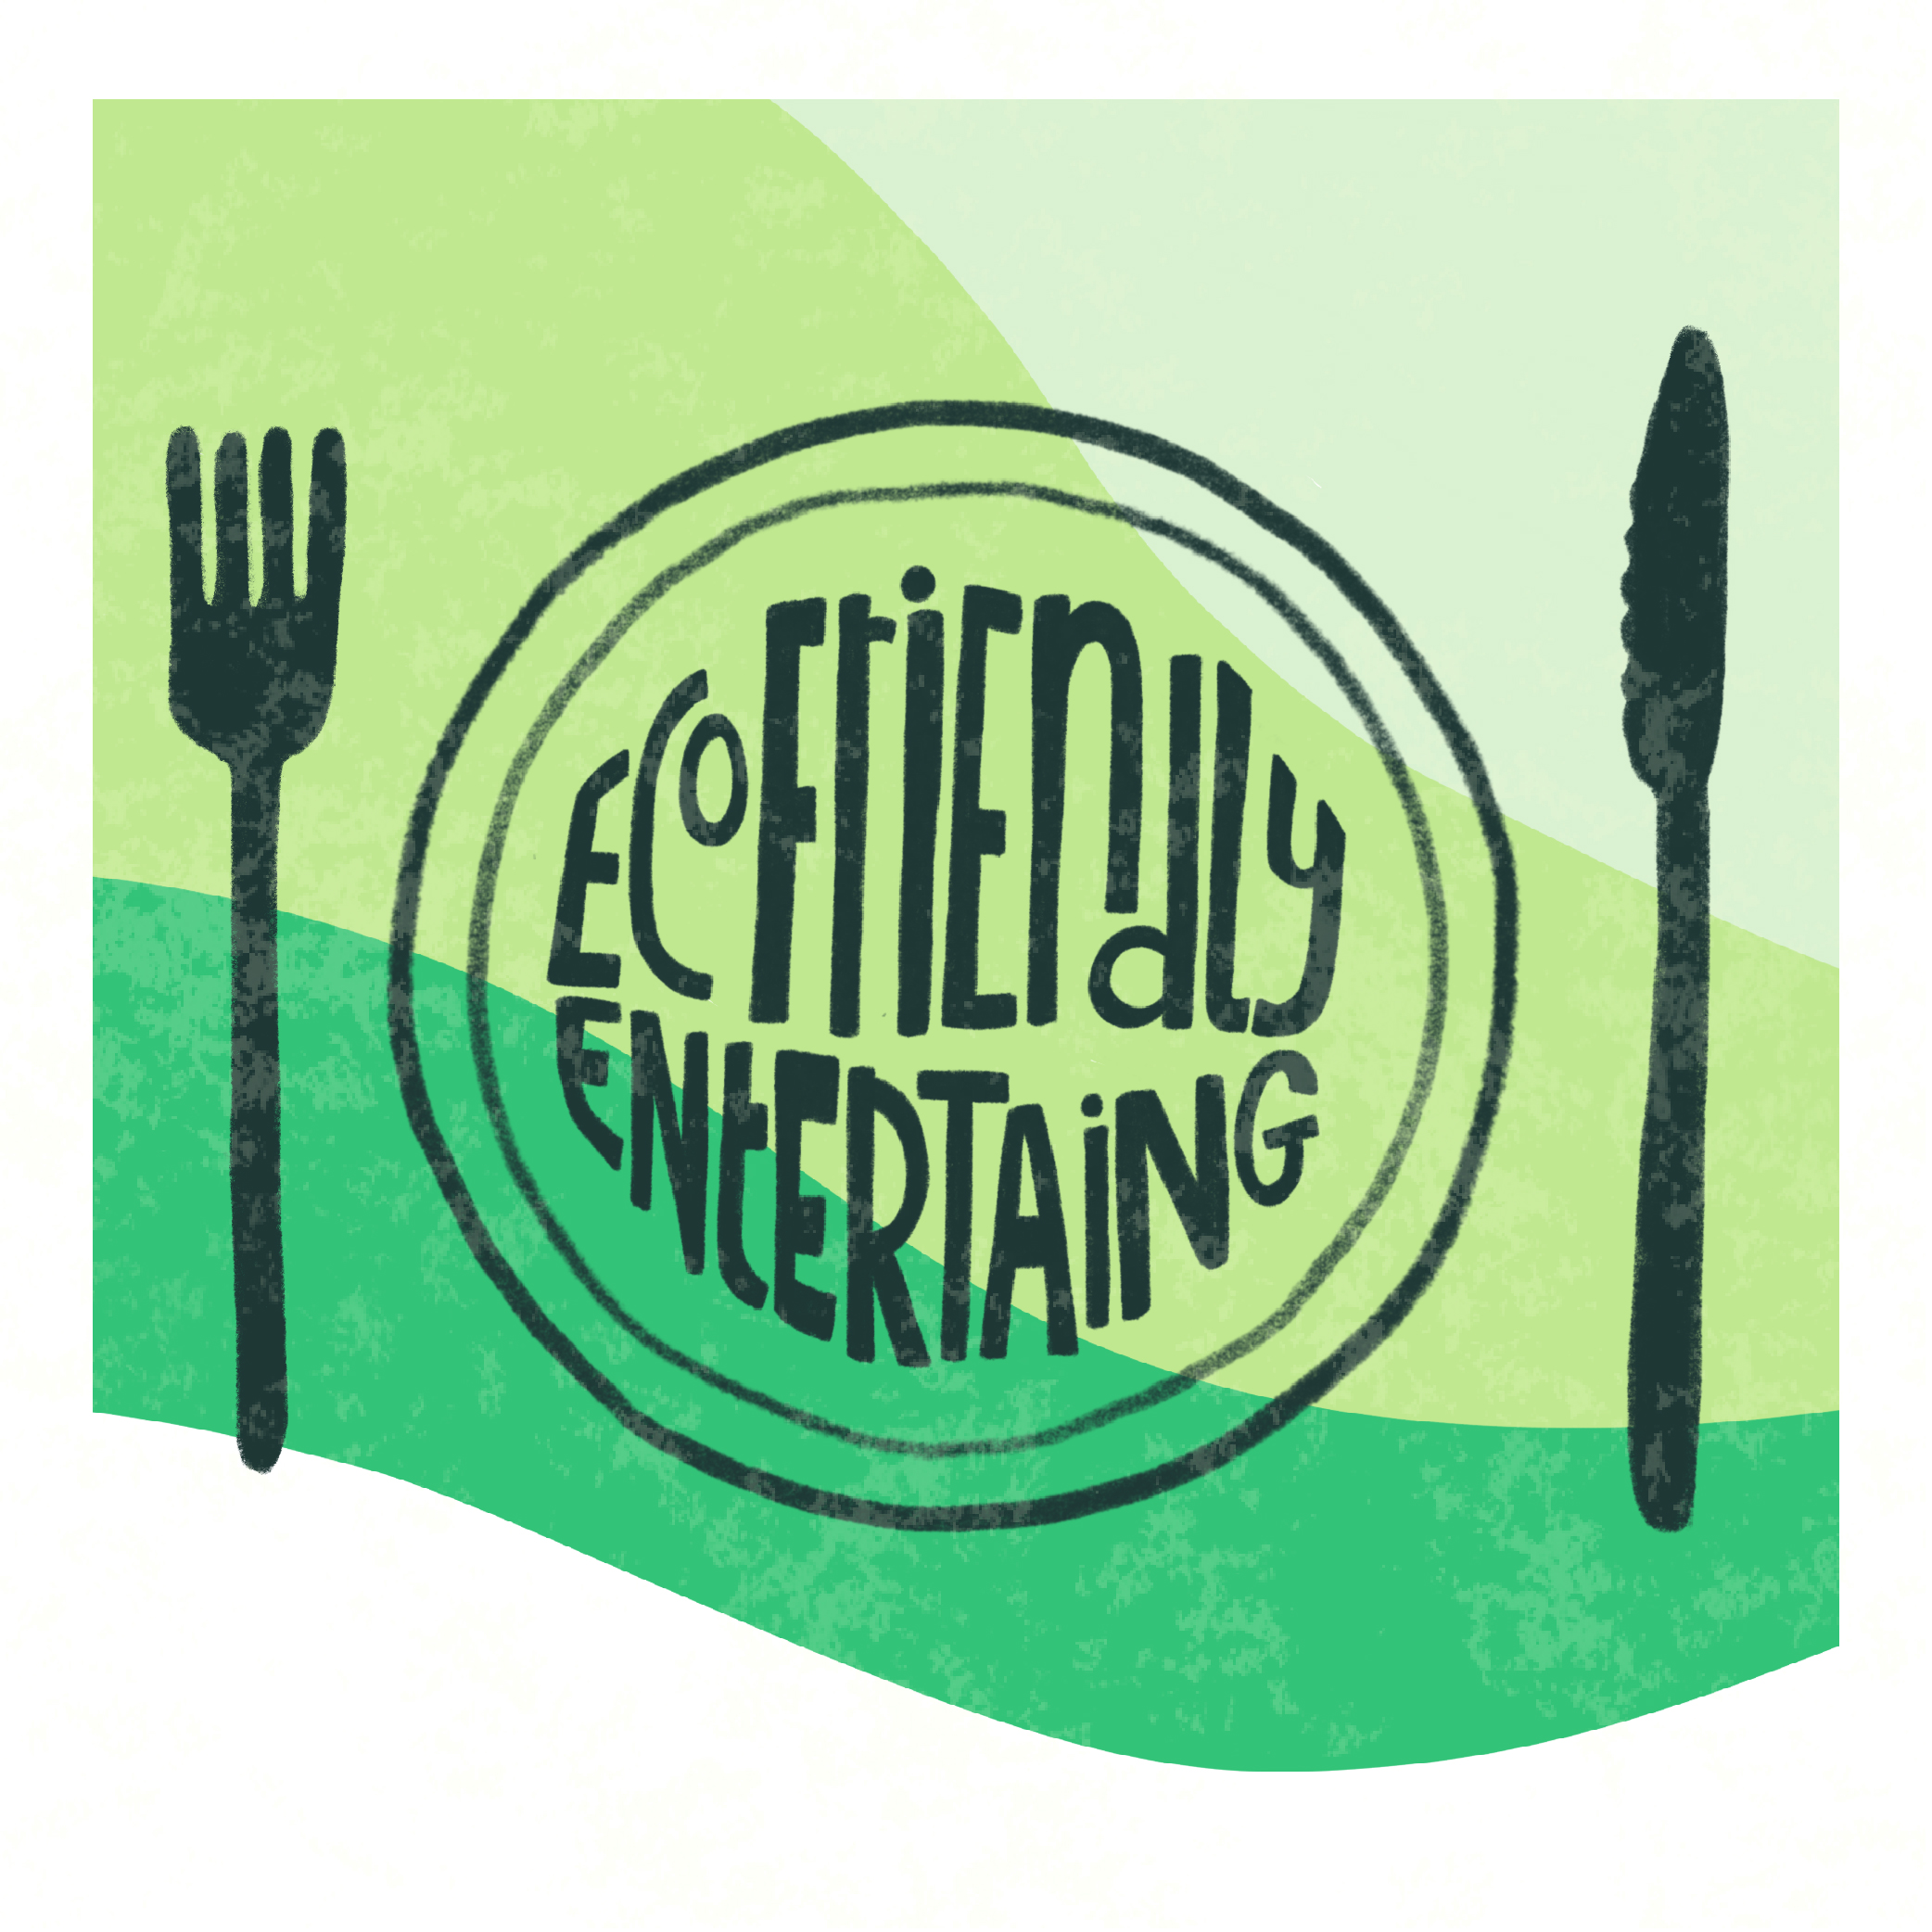 Illustration of a plate with knife and fork. The phrase 'Eco friendly entertaining' on the plate. A green background.